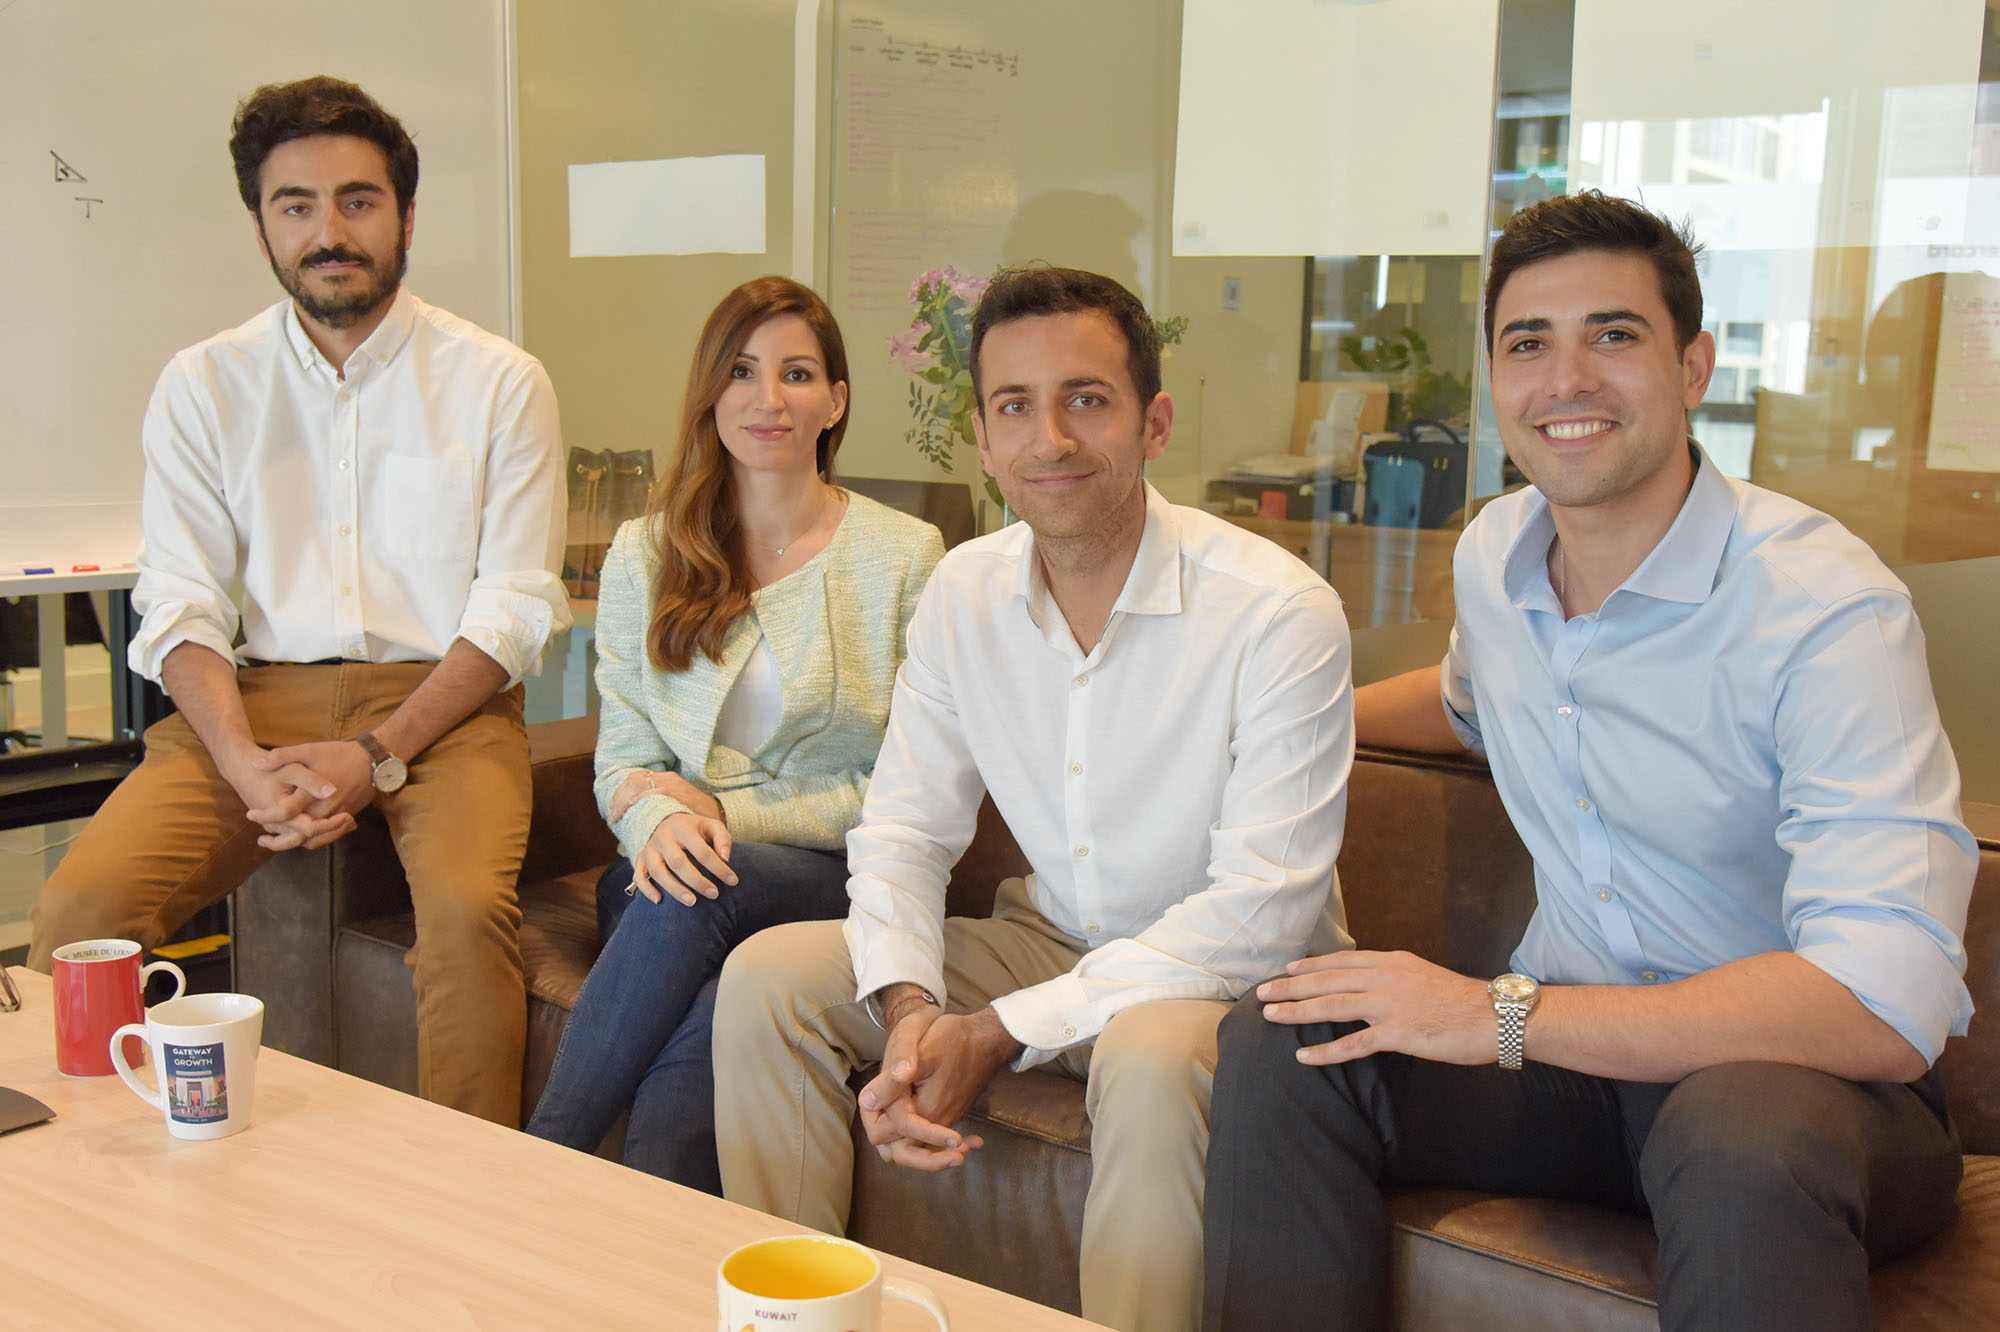 sawra online investment platform founders